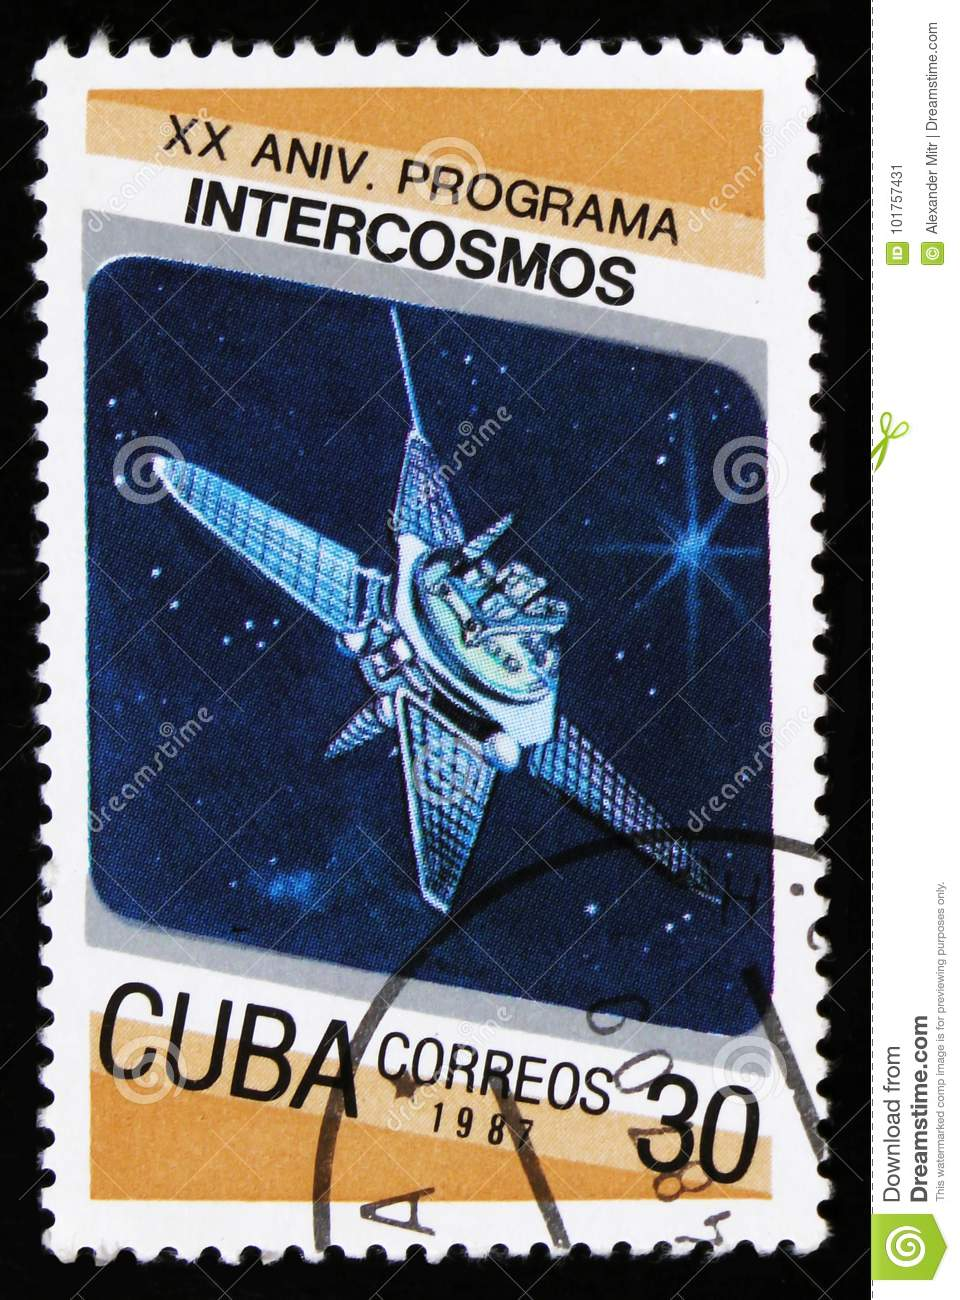 Cuba from the 20th anniversary of Intercosmos program issue shows space satellite, circa 1987